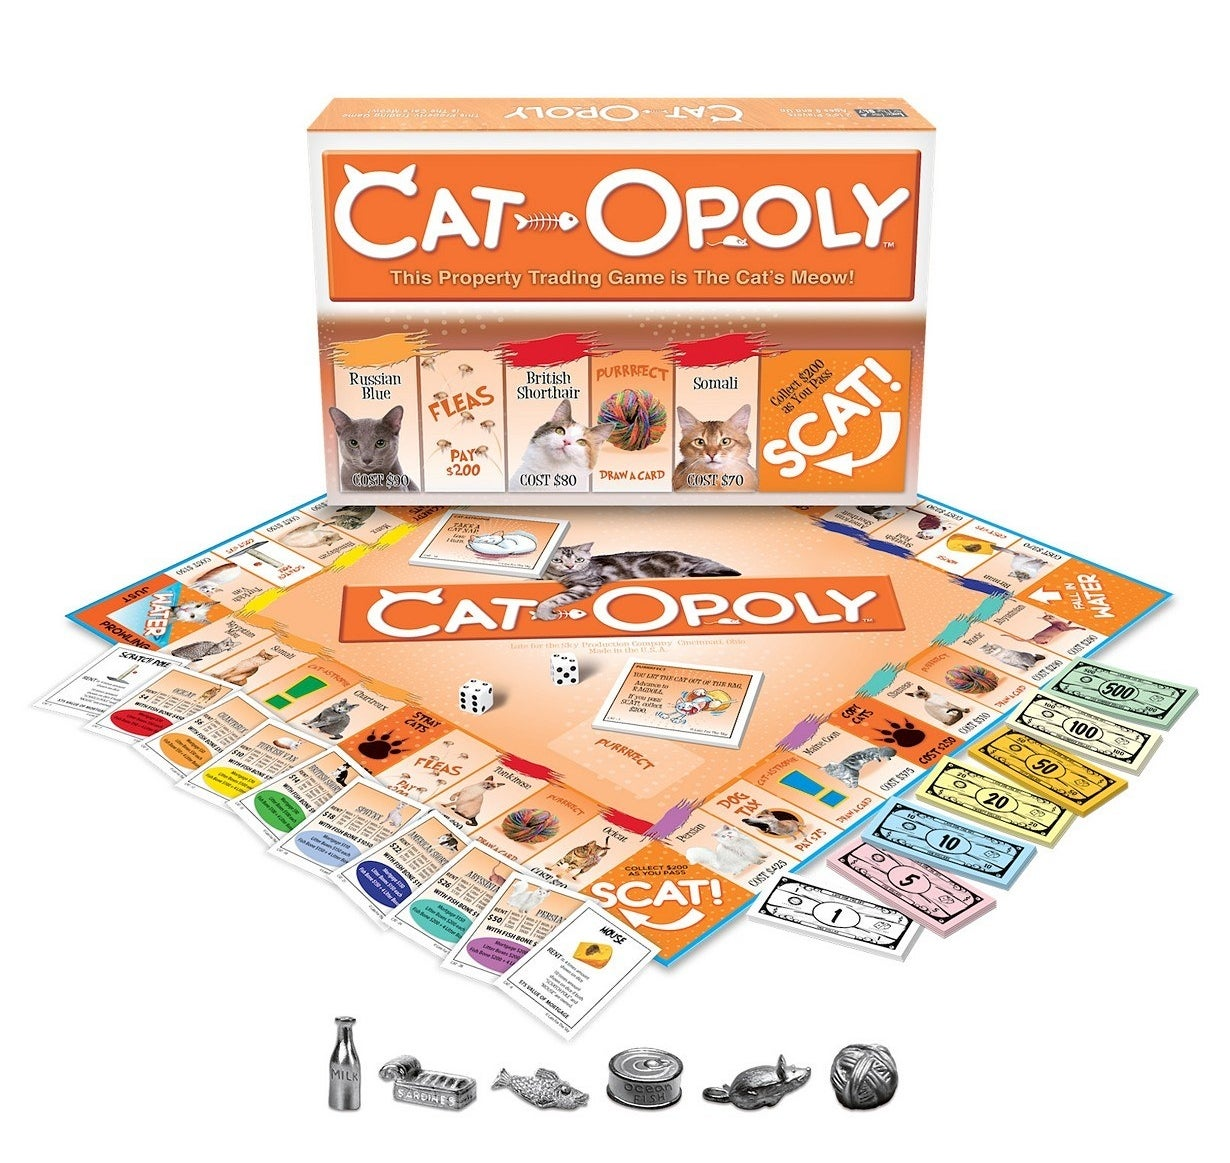 The Cat-Opoly game with its cards and tokens laid out